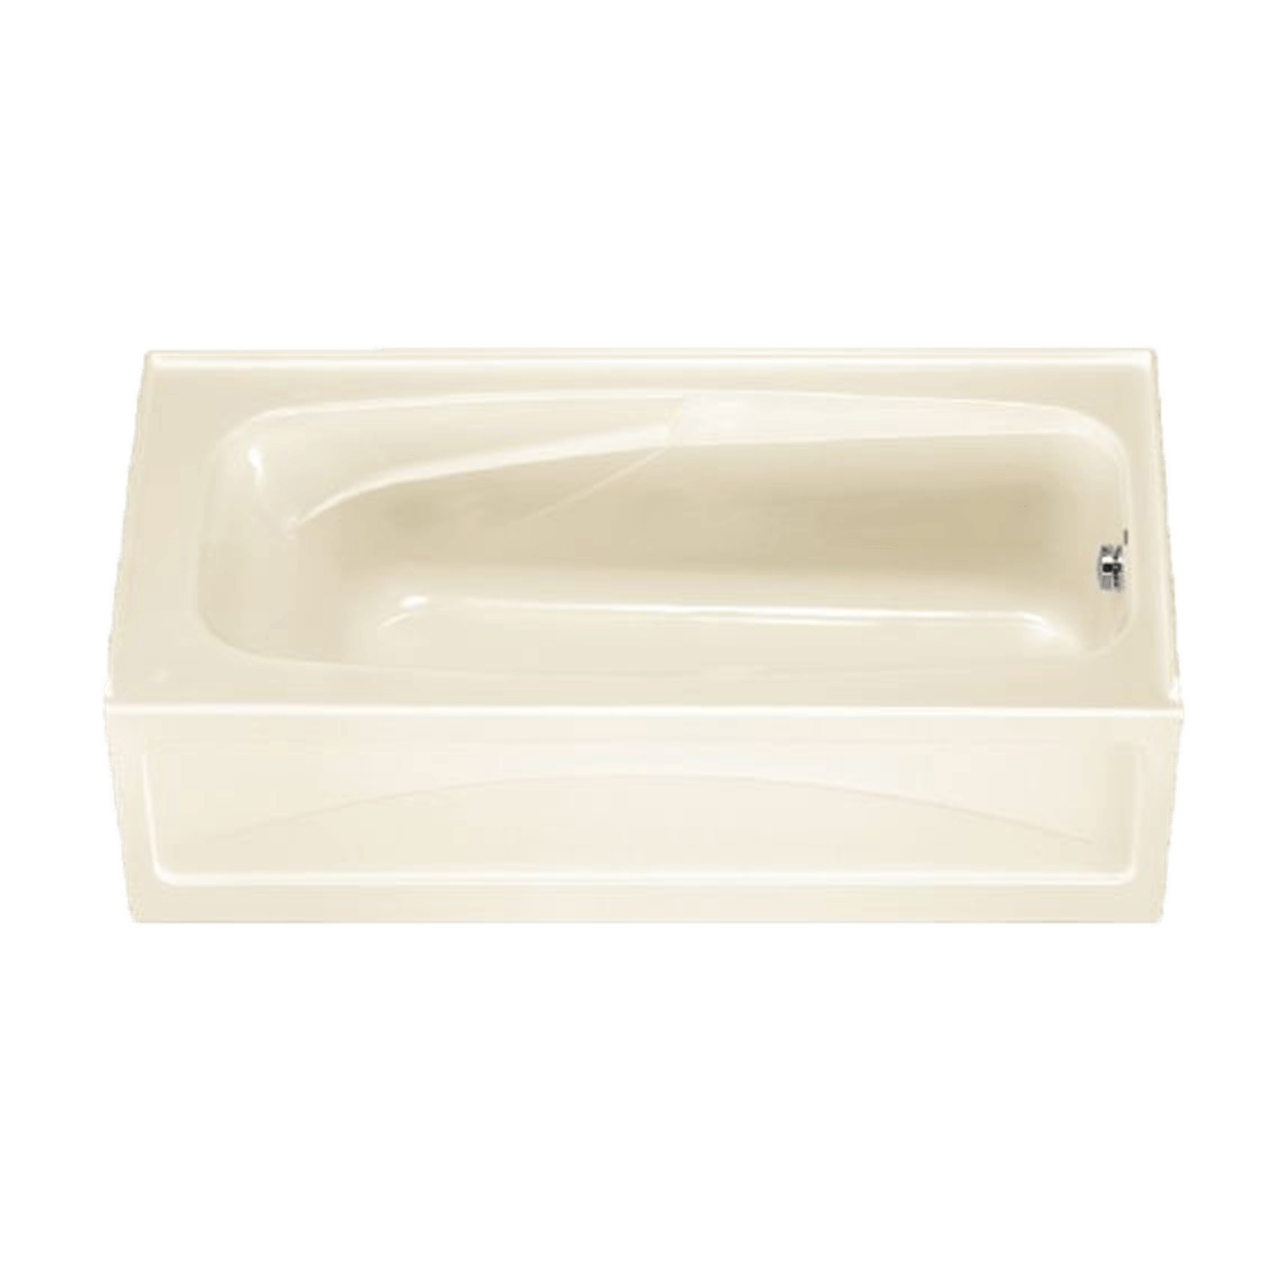 American Standard Colony 66 Inch By 32 Inch Integral Apron Bathtub Allied Plumbing Amp Heating